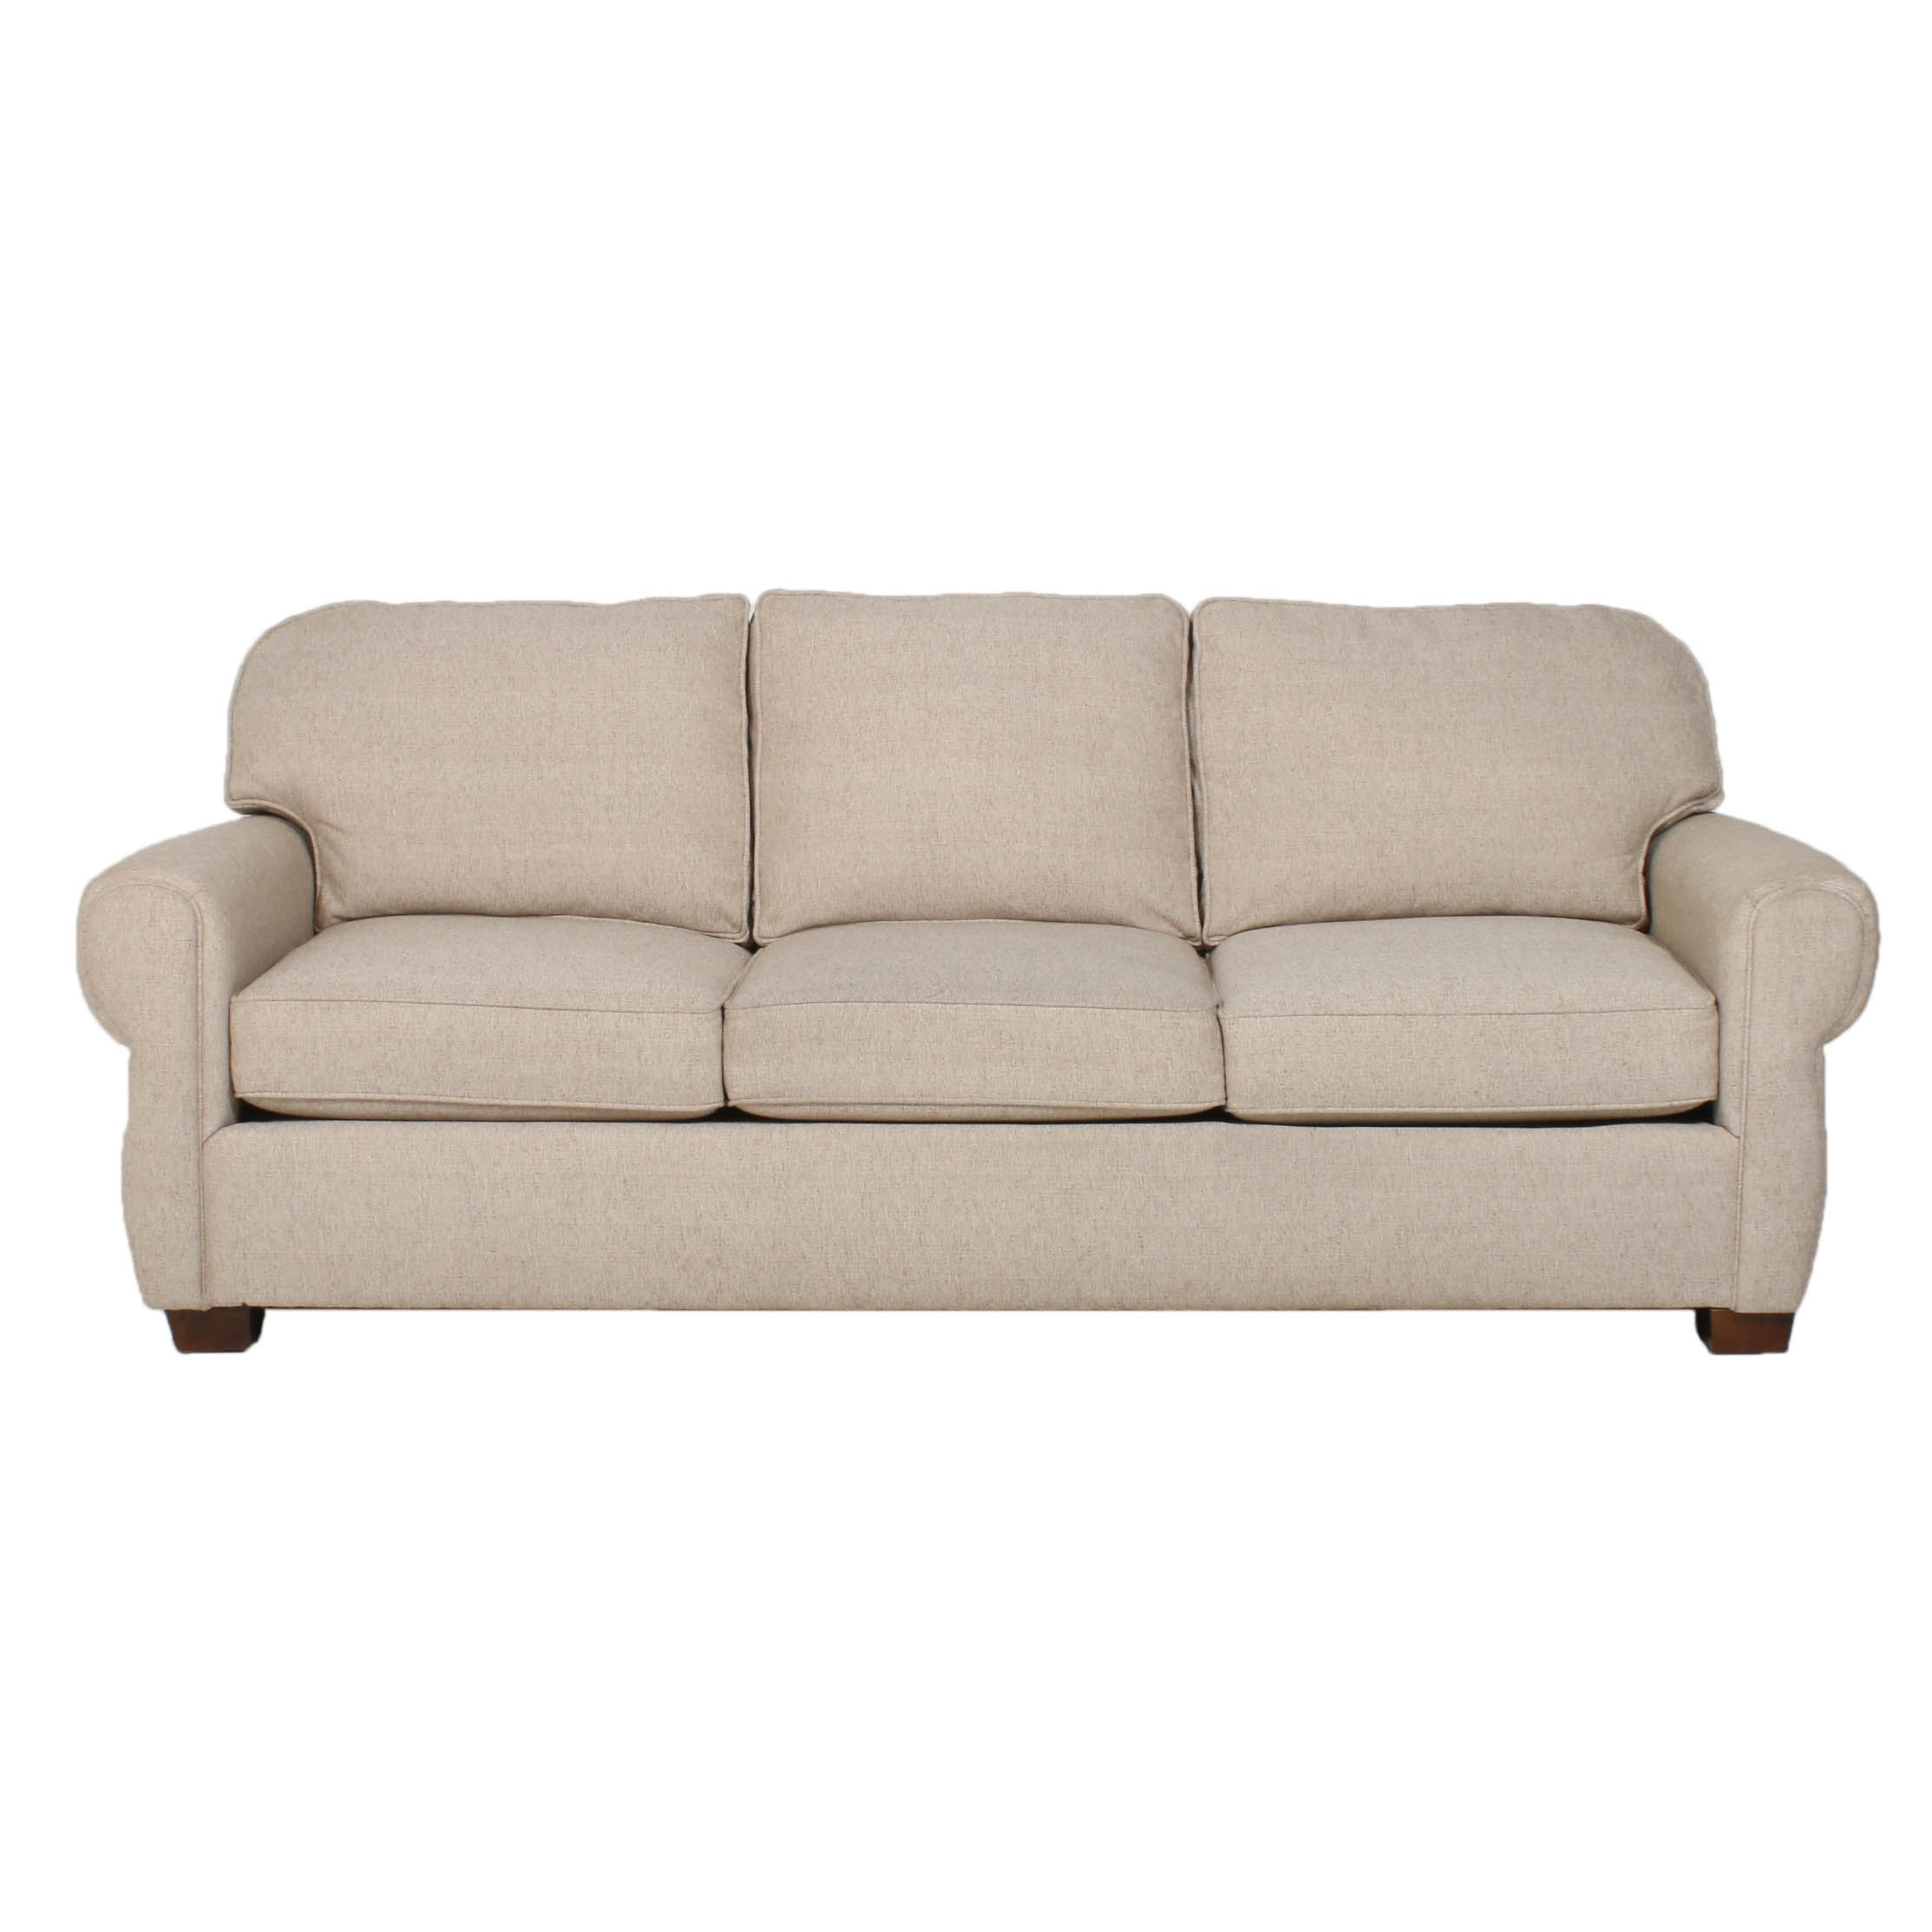 Broyhill for Frontroom Furnishings Beige Upholstered Sofa